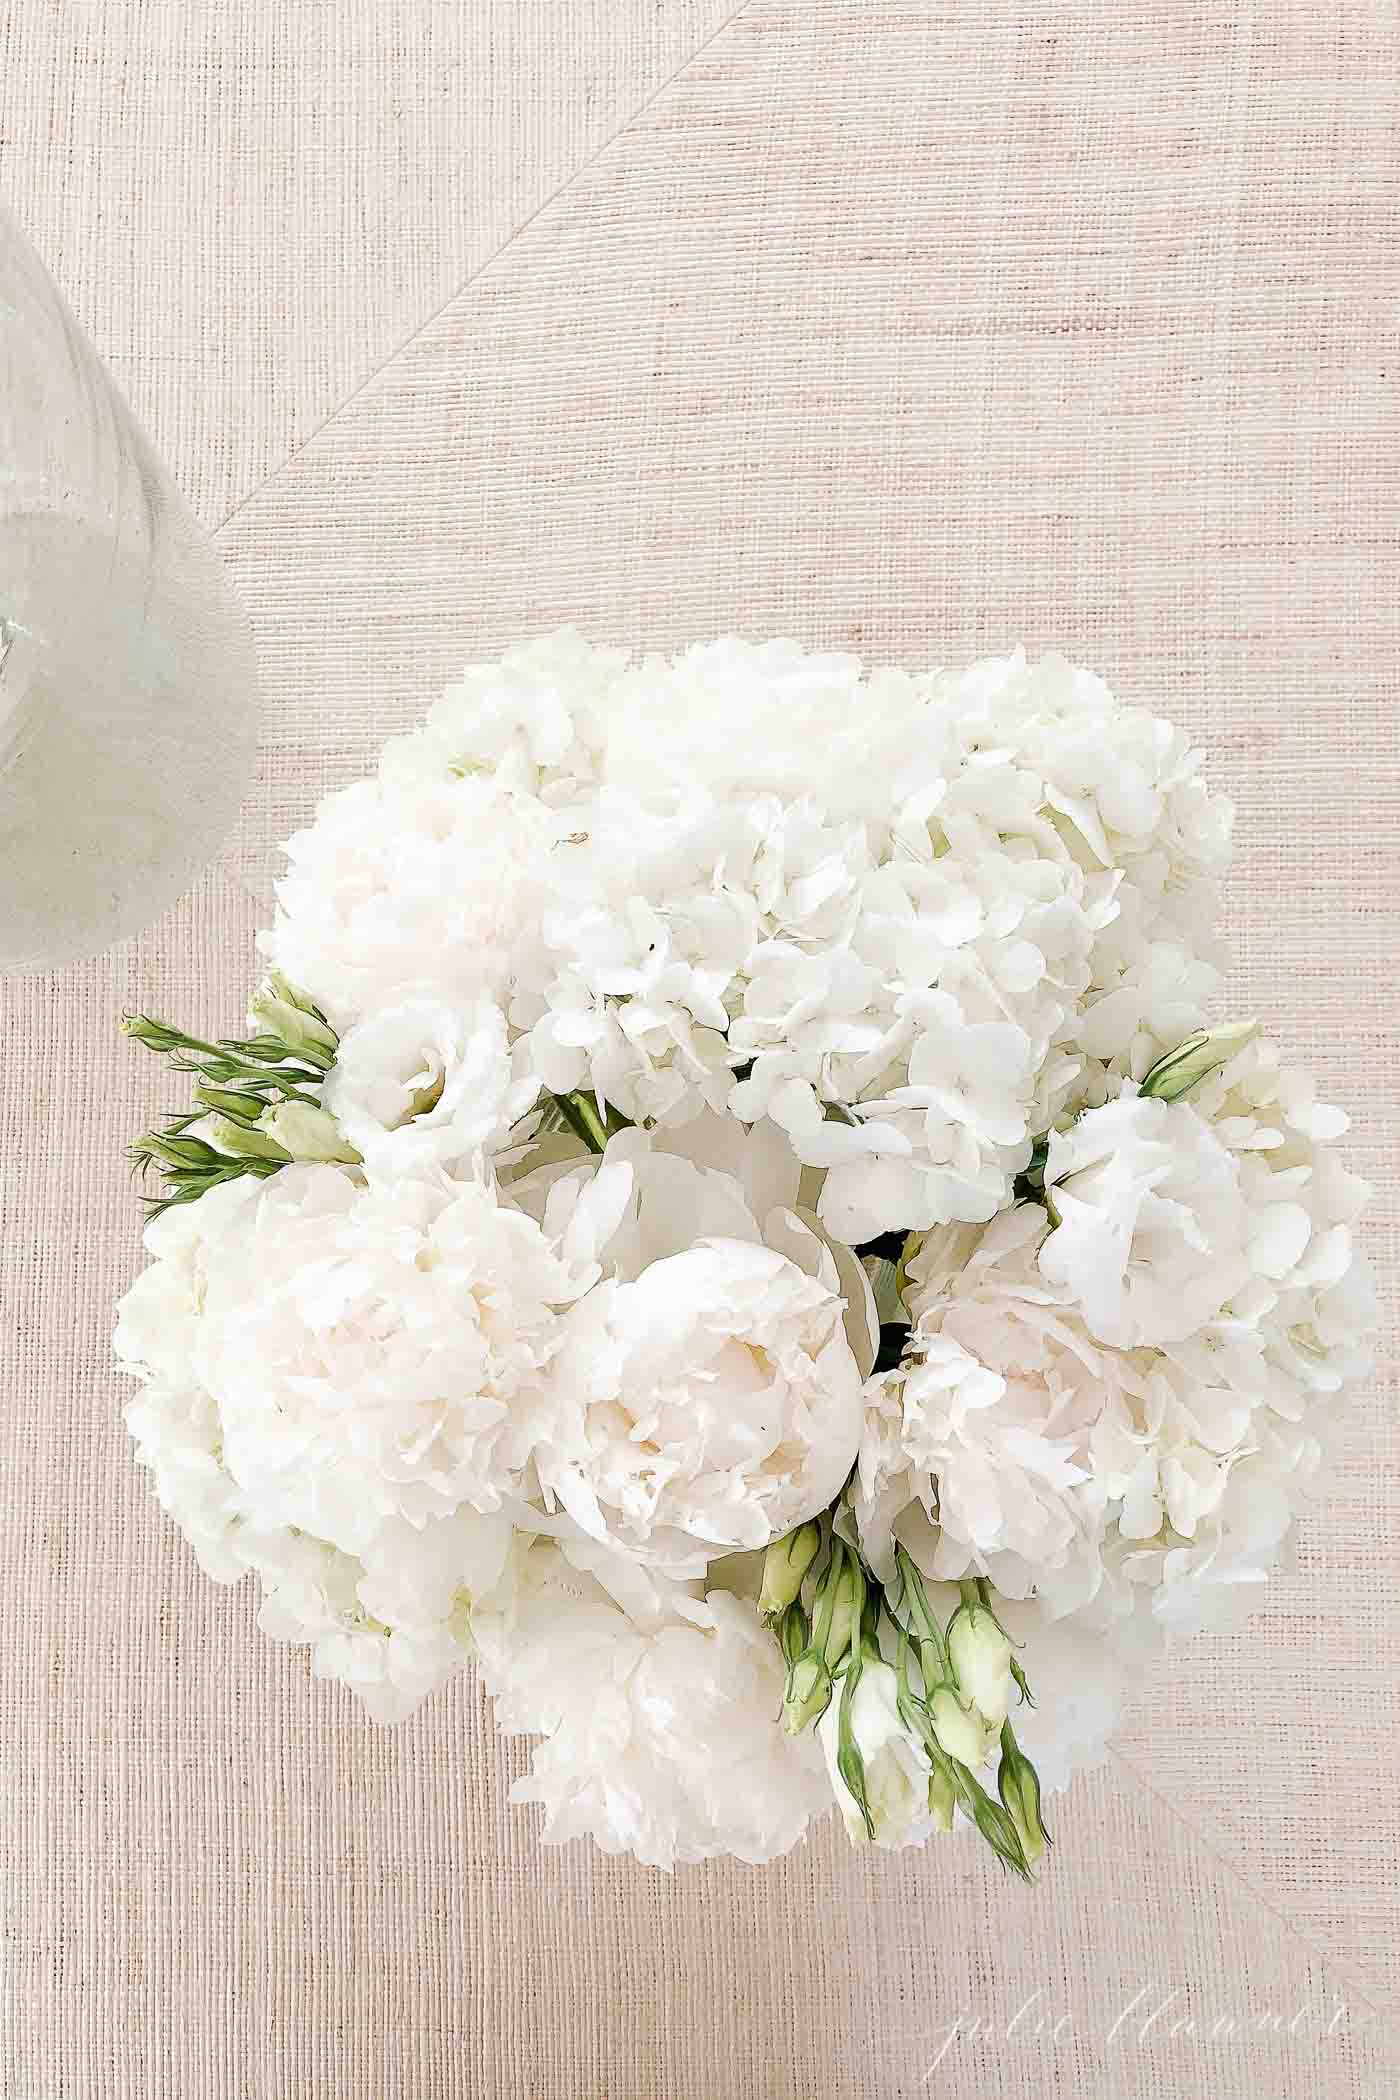 An all white hydrangea centerpiece on a textured neutral surface.